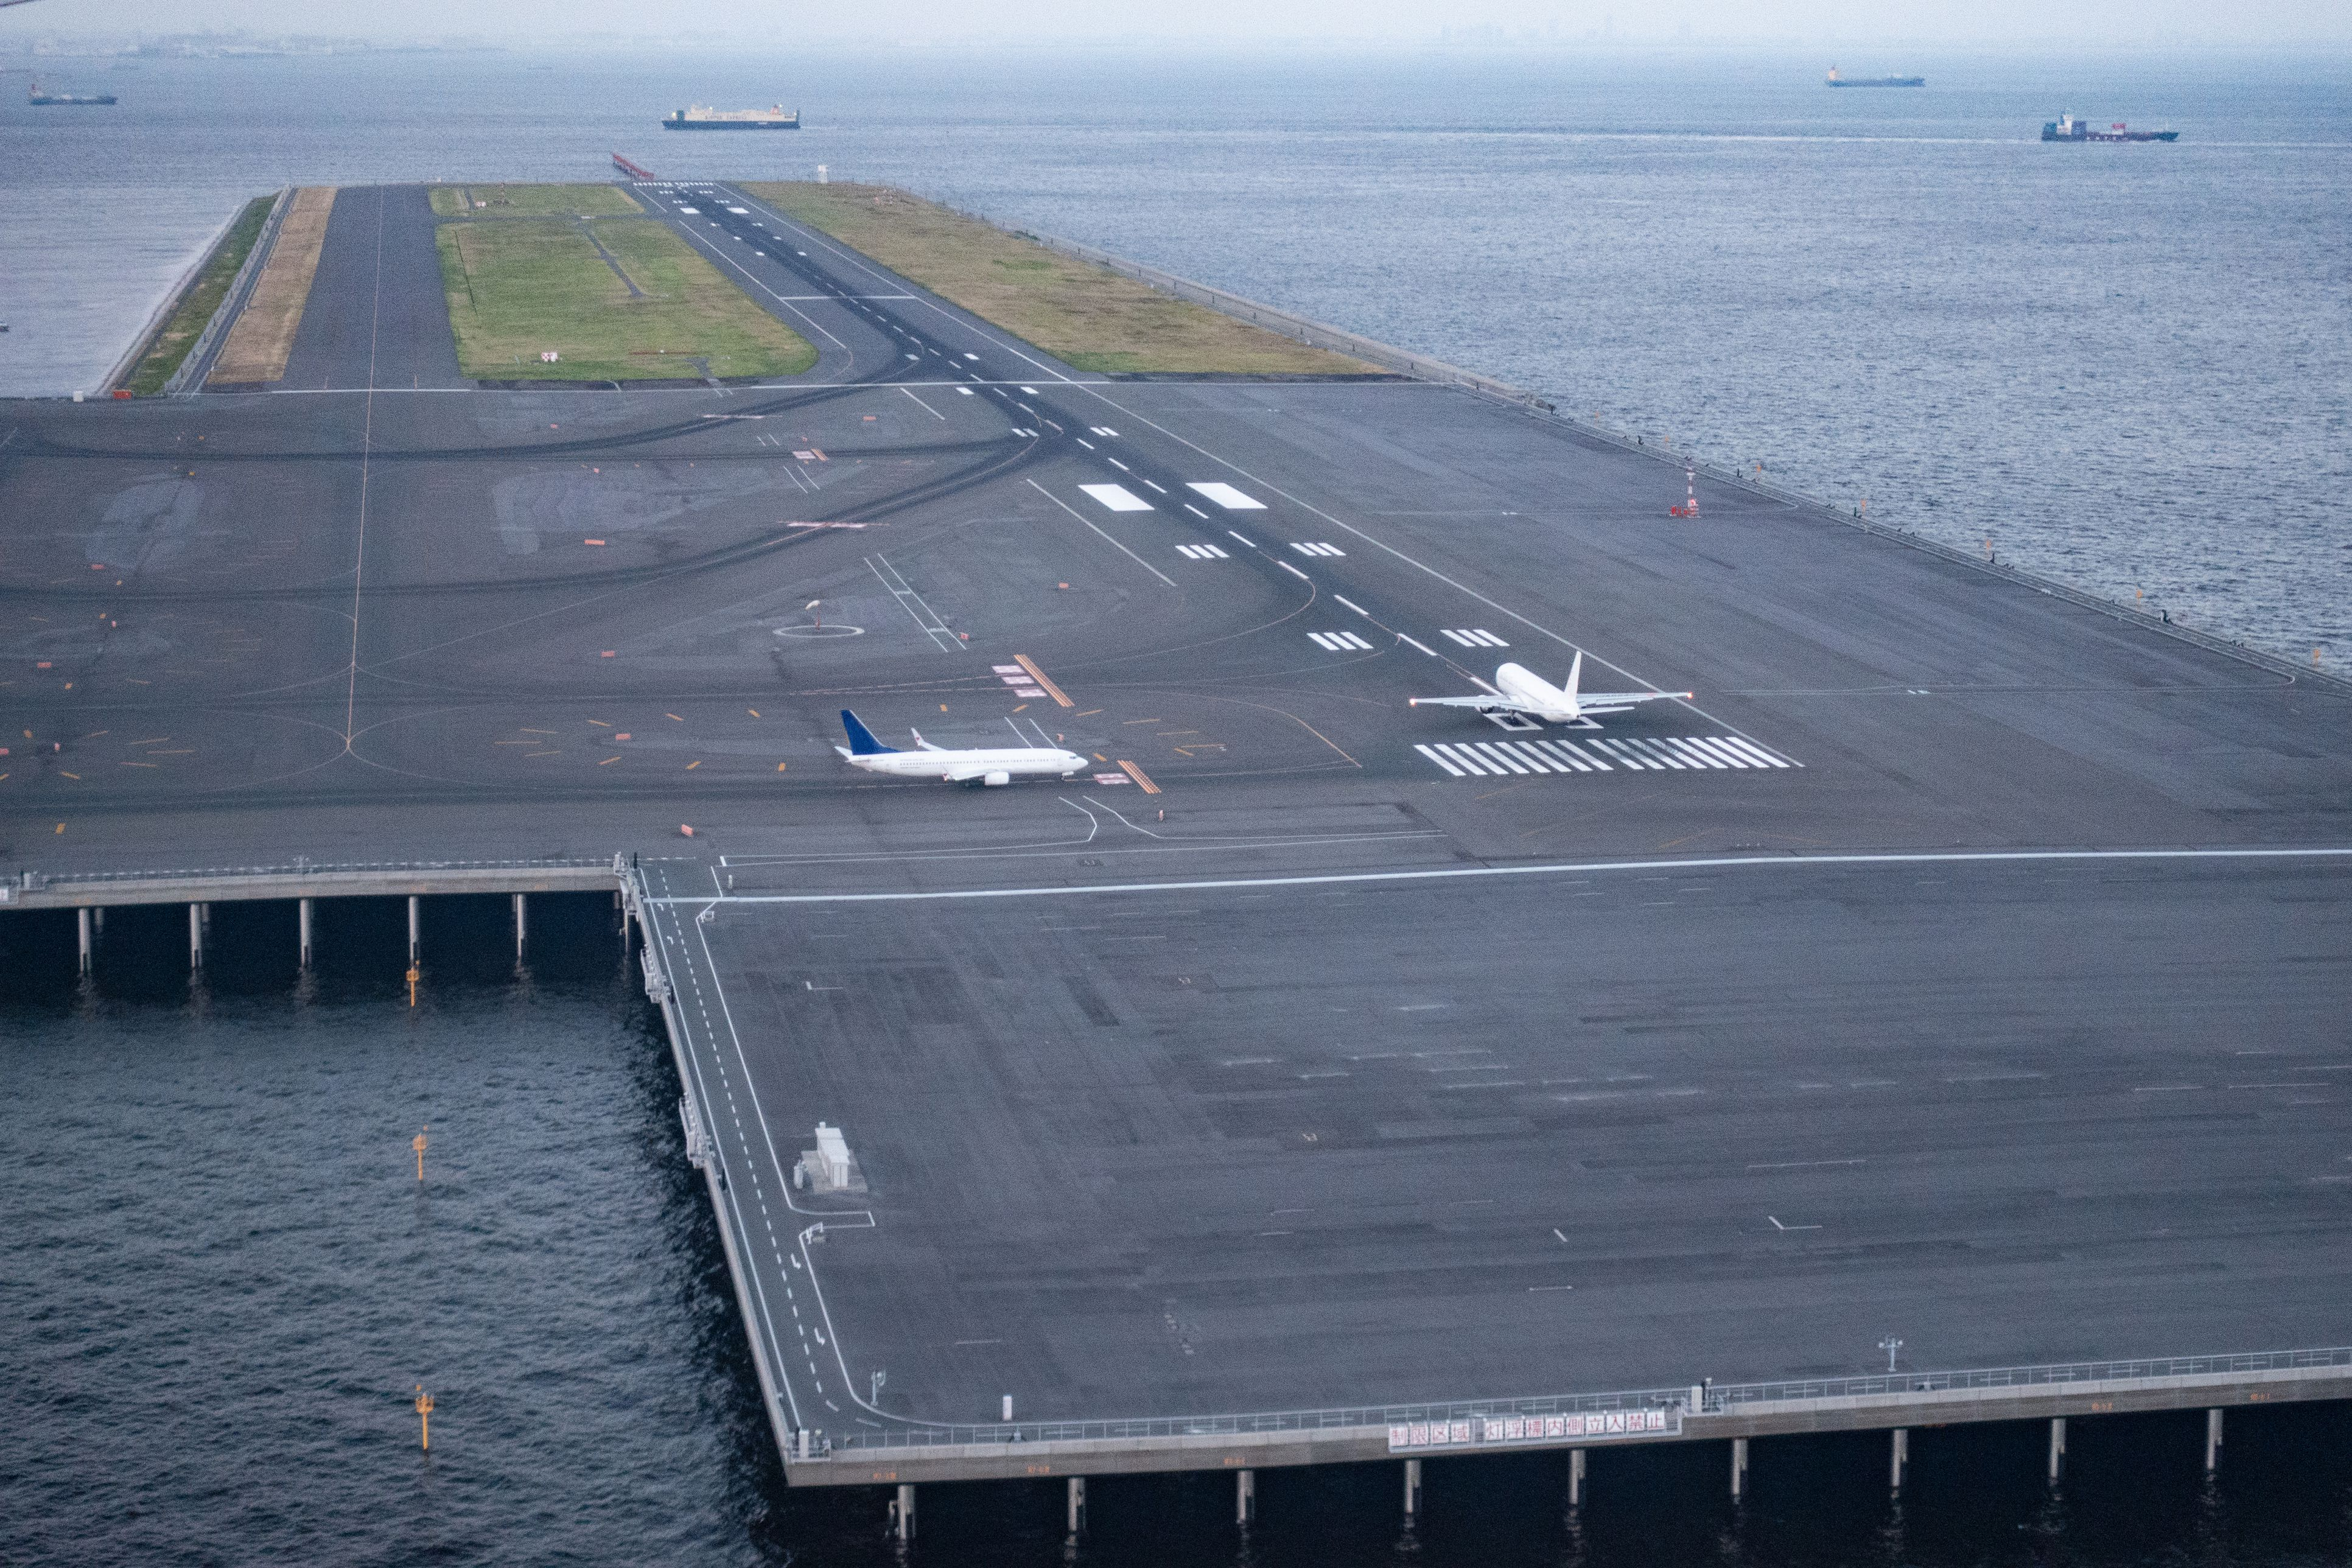 Japan's Floating Airports